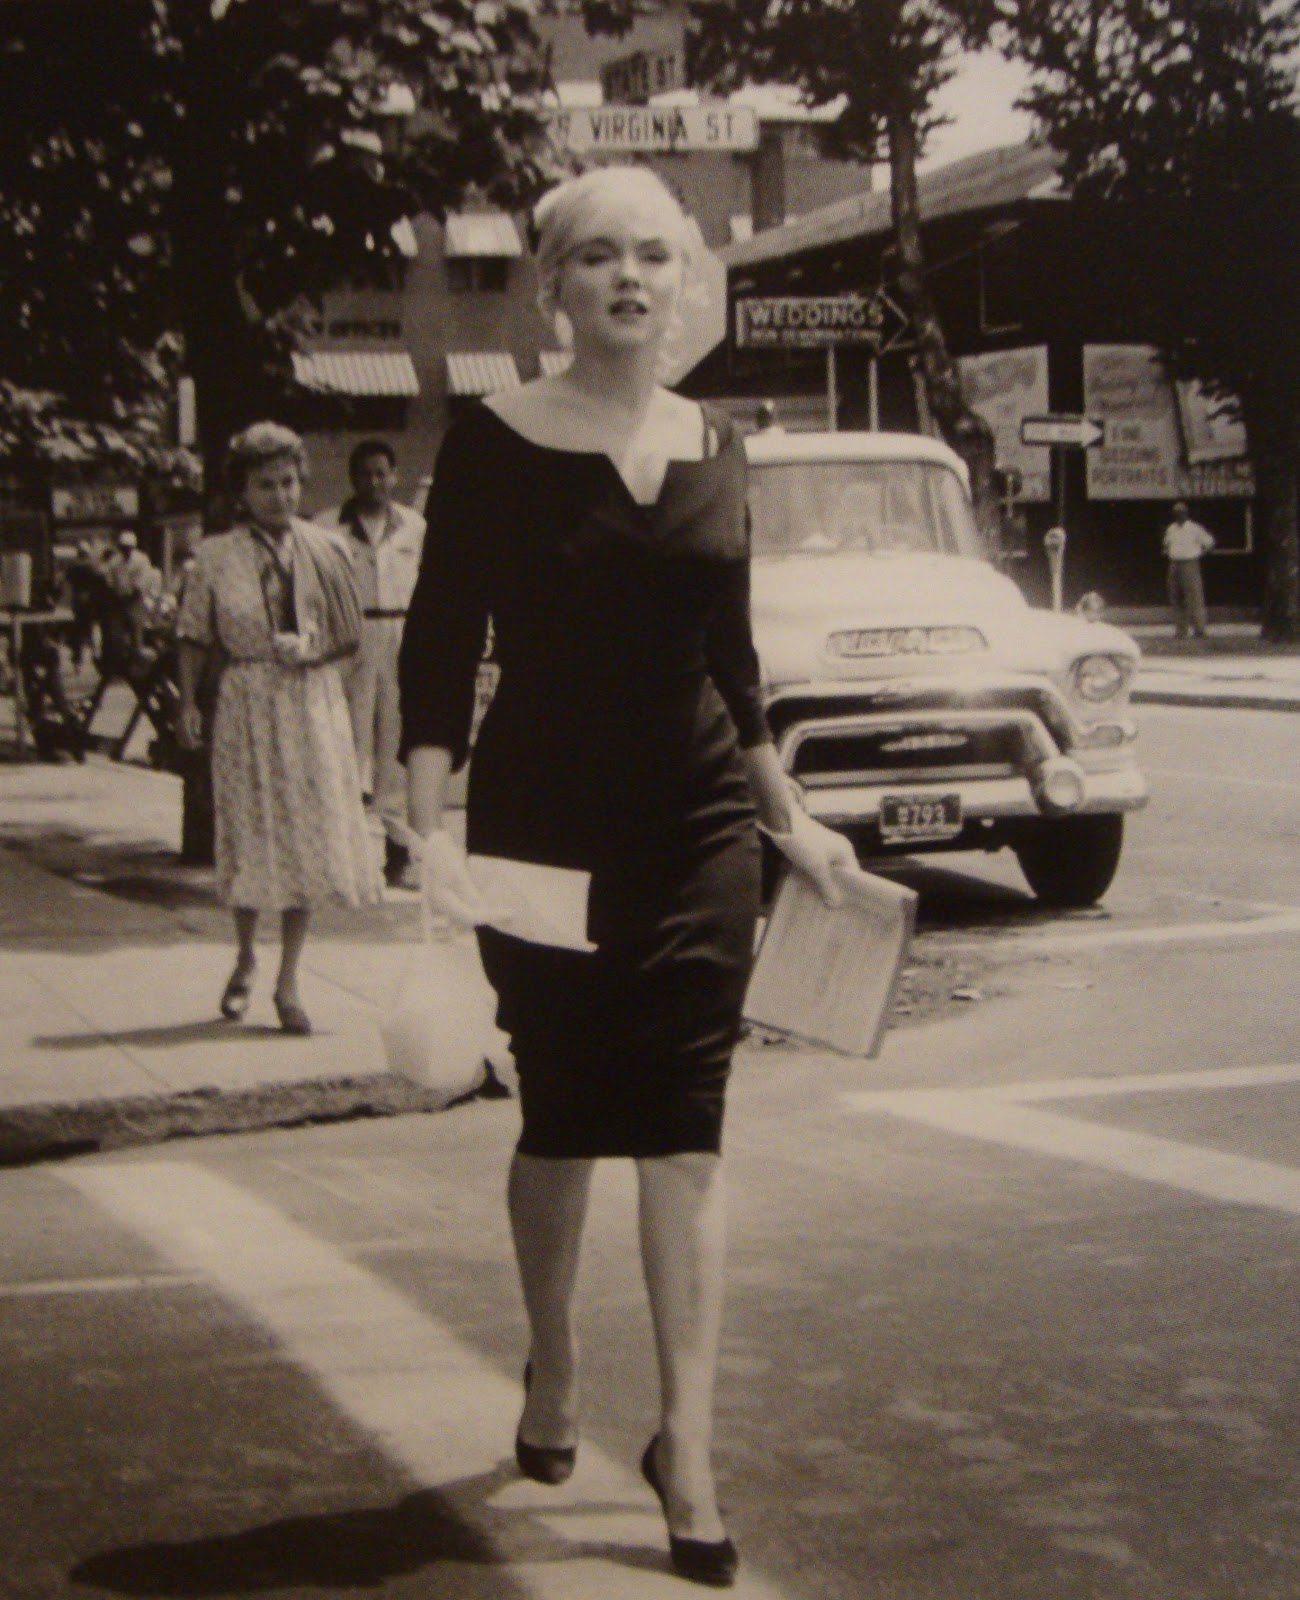 Kittens   Aprons  The Personal Style of Marilyn Monroe e3682eedf58a